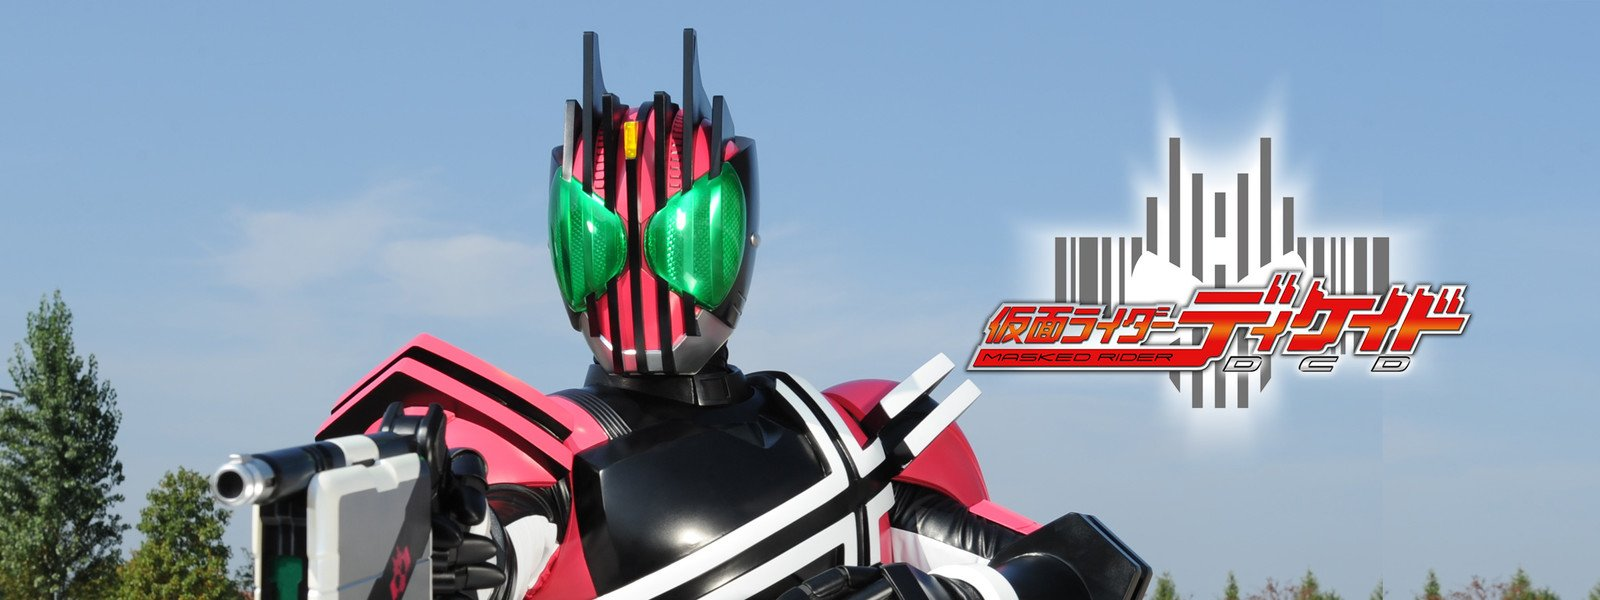 img 5a7290fe826d7.png?resize=1200,630 - 「仮面ライダーディケイド」で人気が出た若手俳優は?